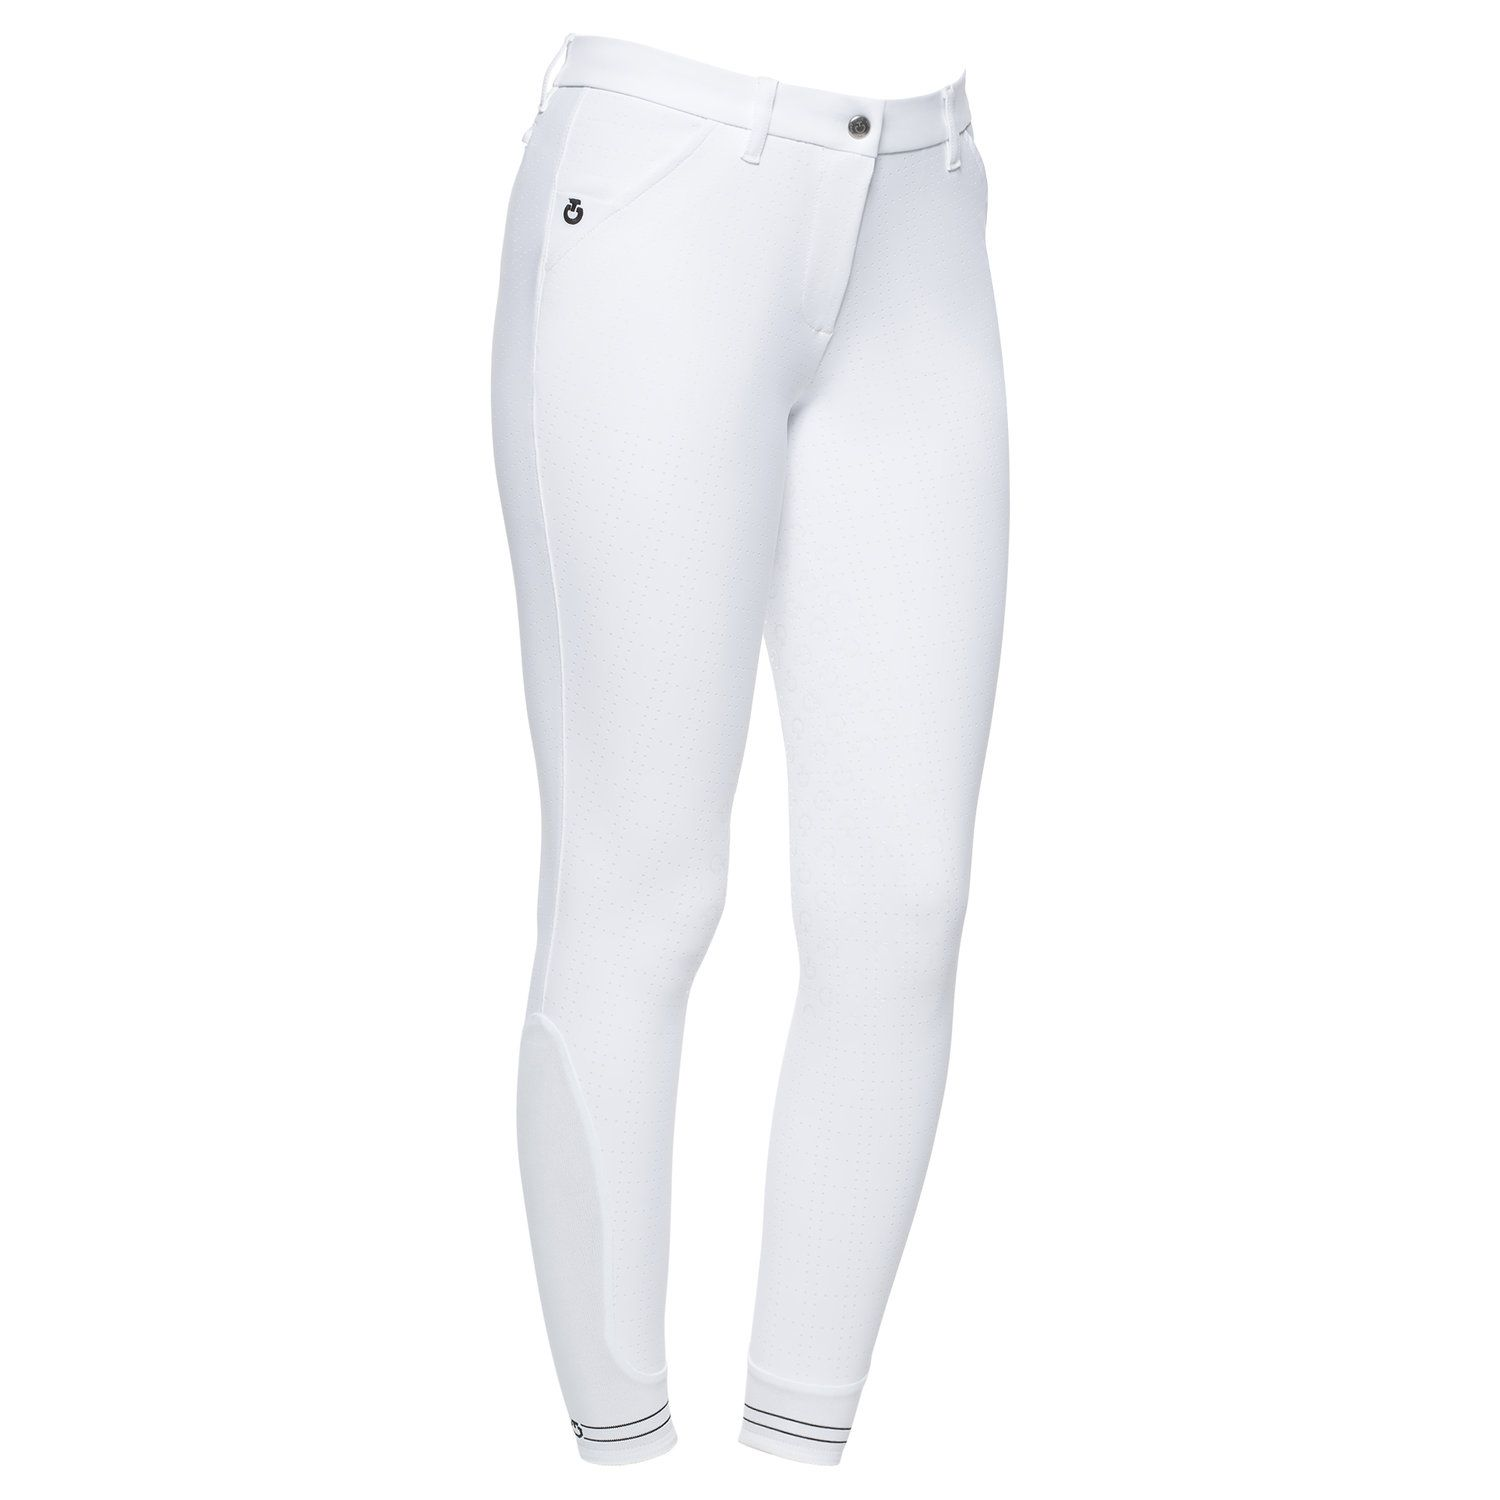 Women`s full grip breeches with squared perforated pattern